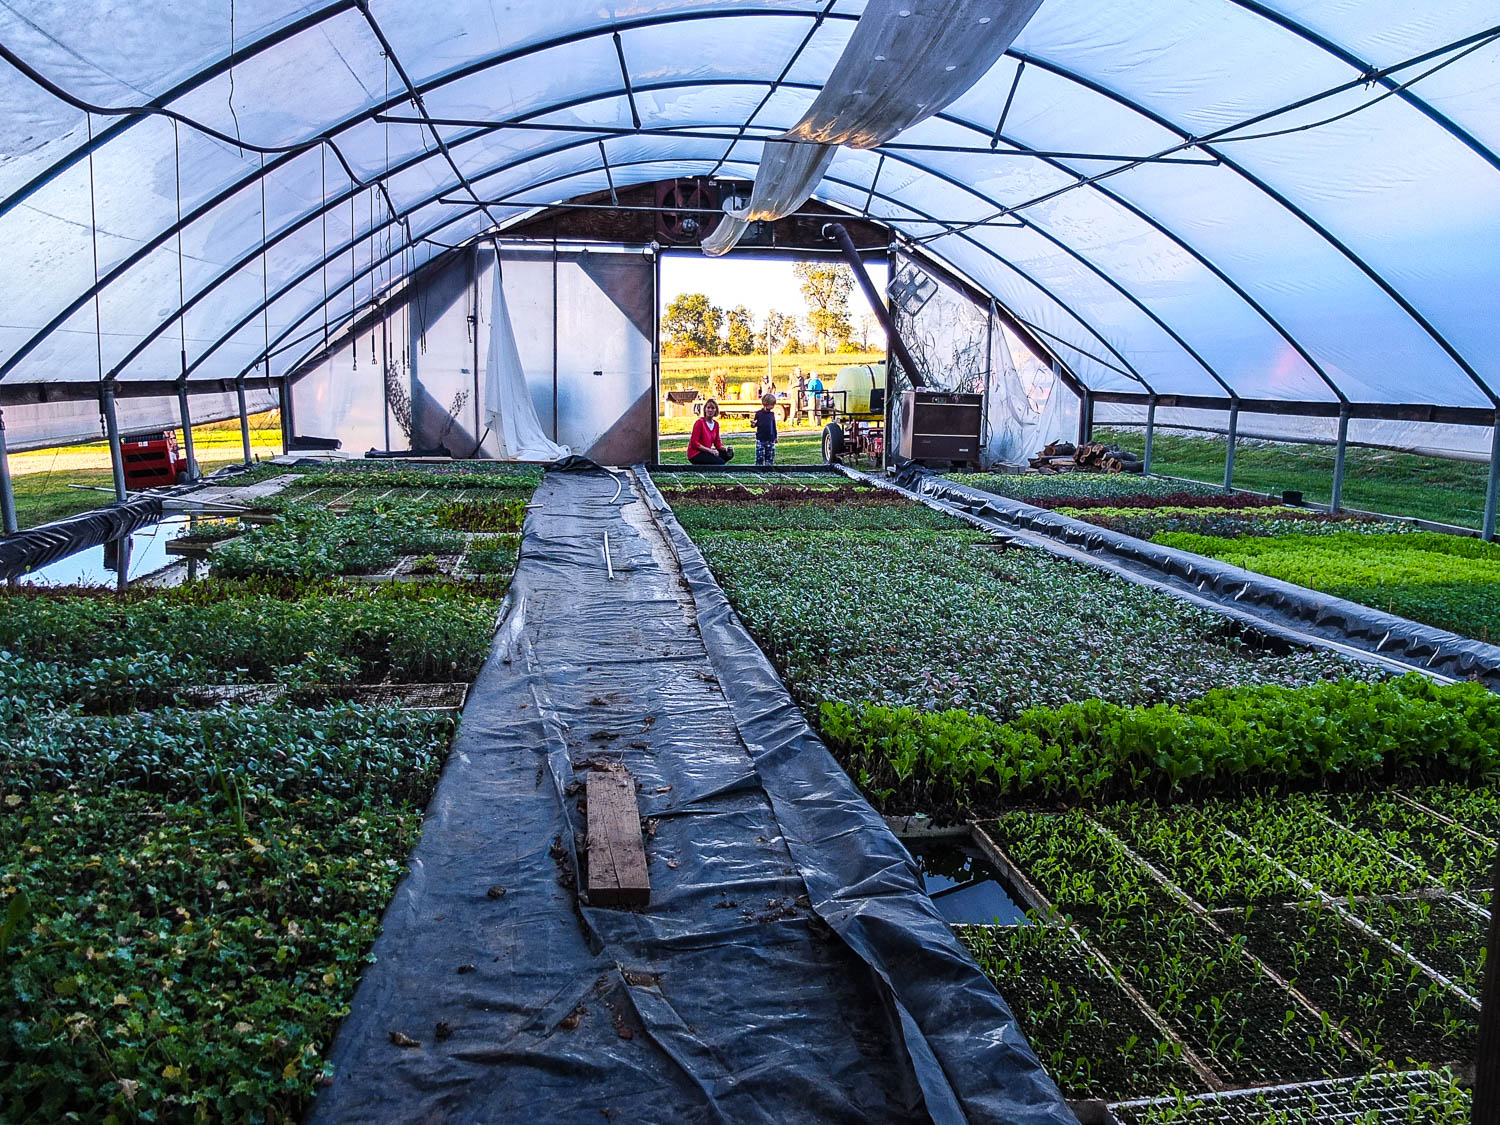 Elmwood Stock Farm  hoop house, or high tunnel. Elmwood farmers have practiced season extension for years as part of their organic farming operations.